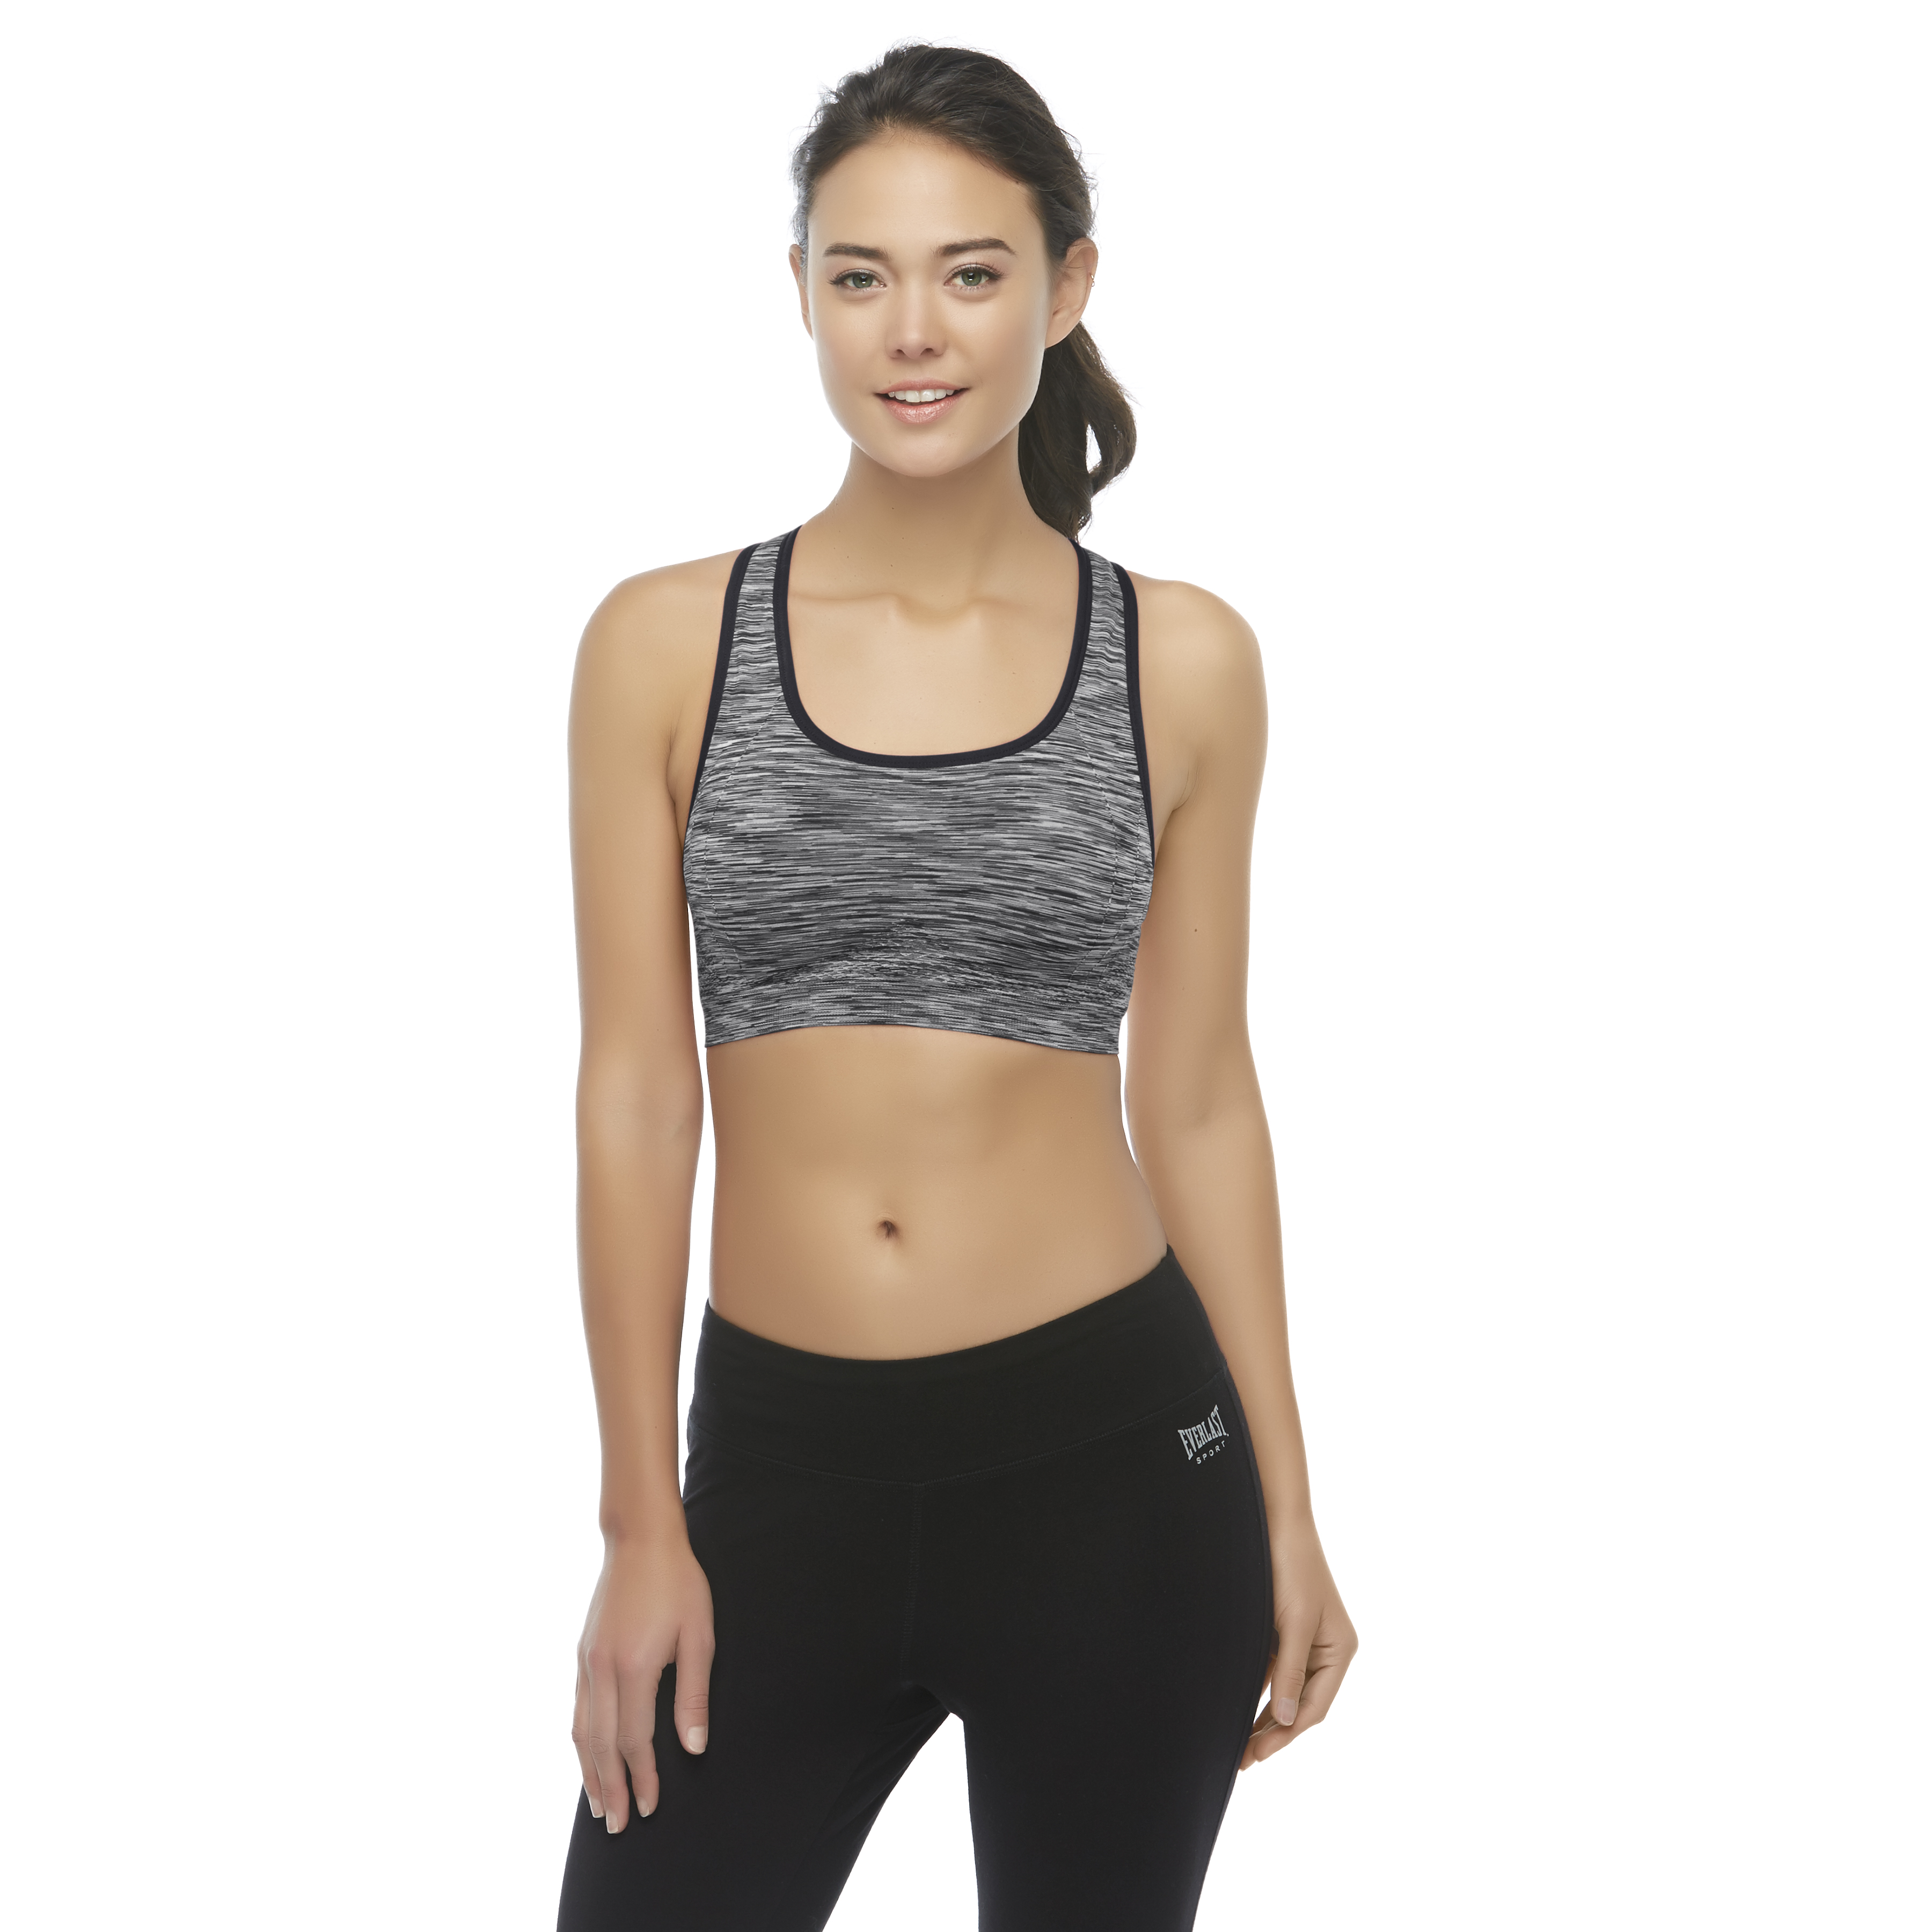 Everlast Space Dyed Seamless Padded Sports Bra 5398938